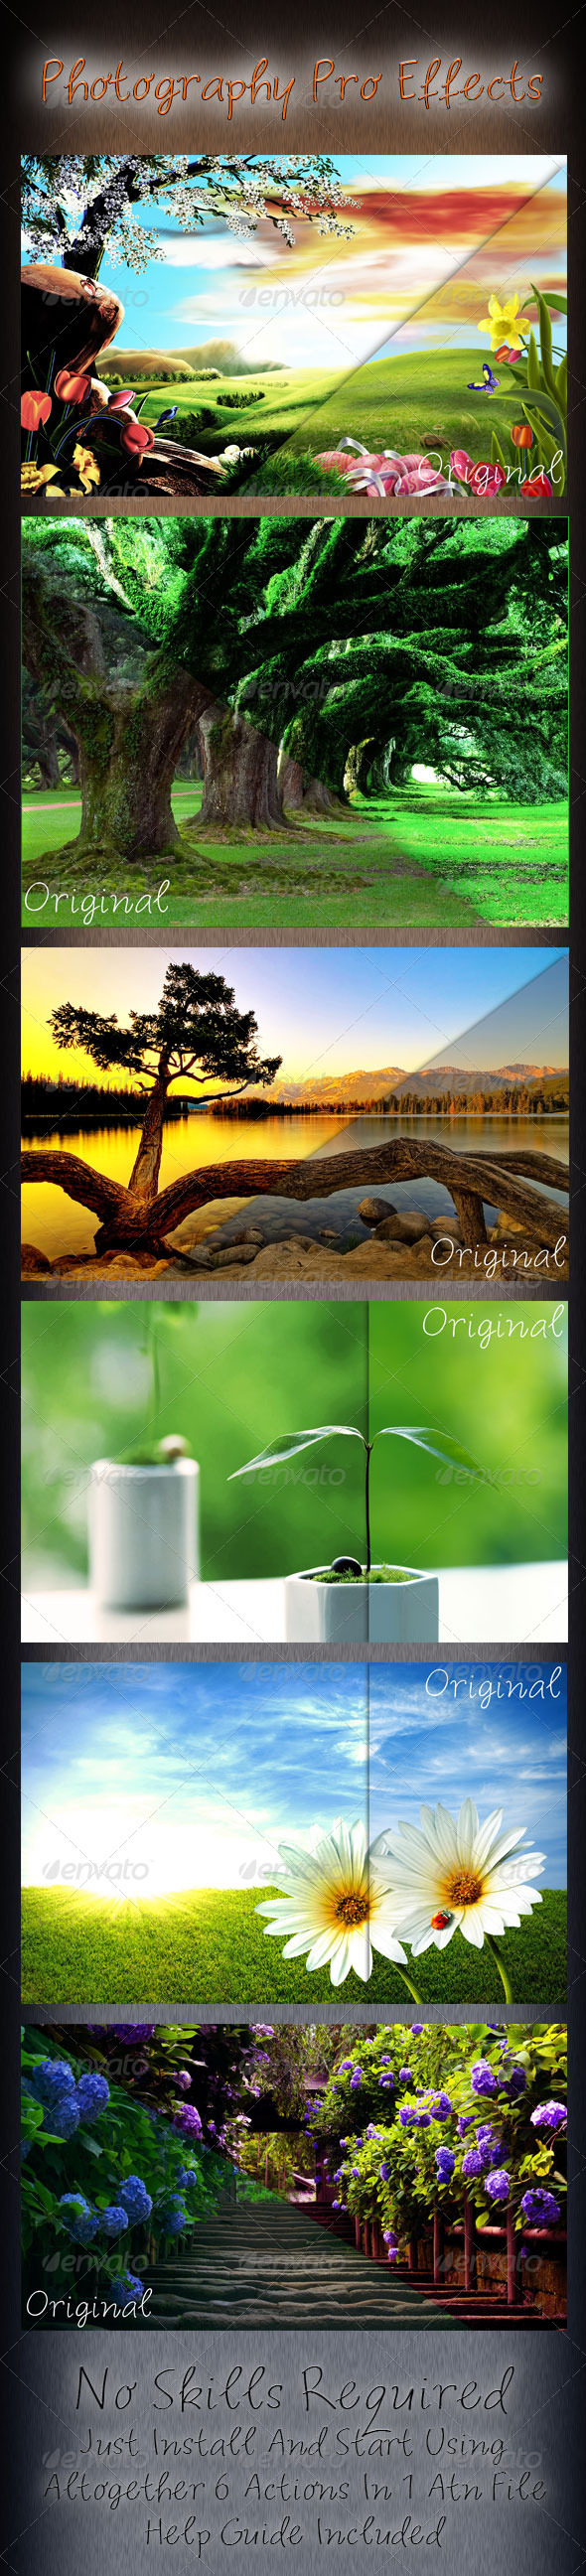 GraphicRiver Photography Pro Effects 6235517